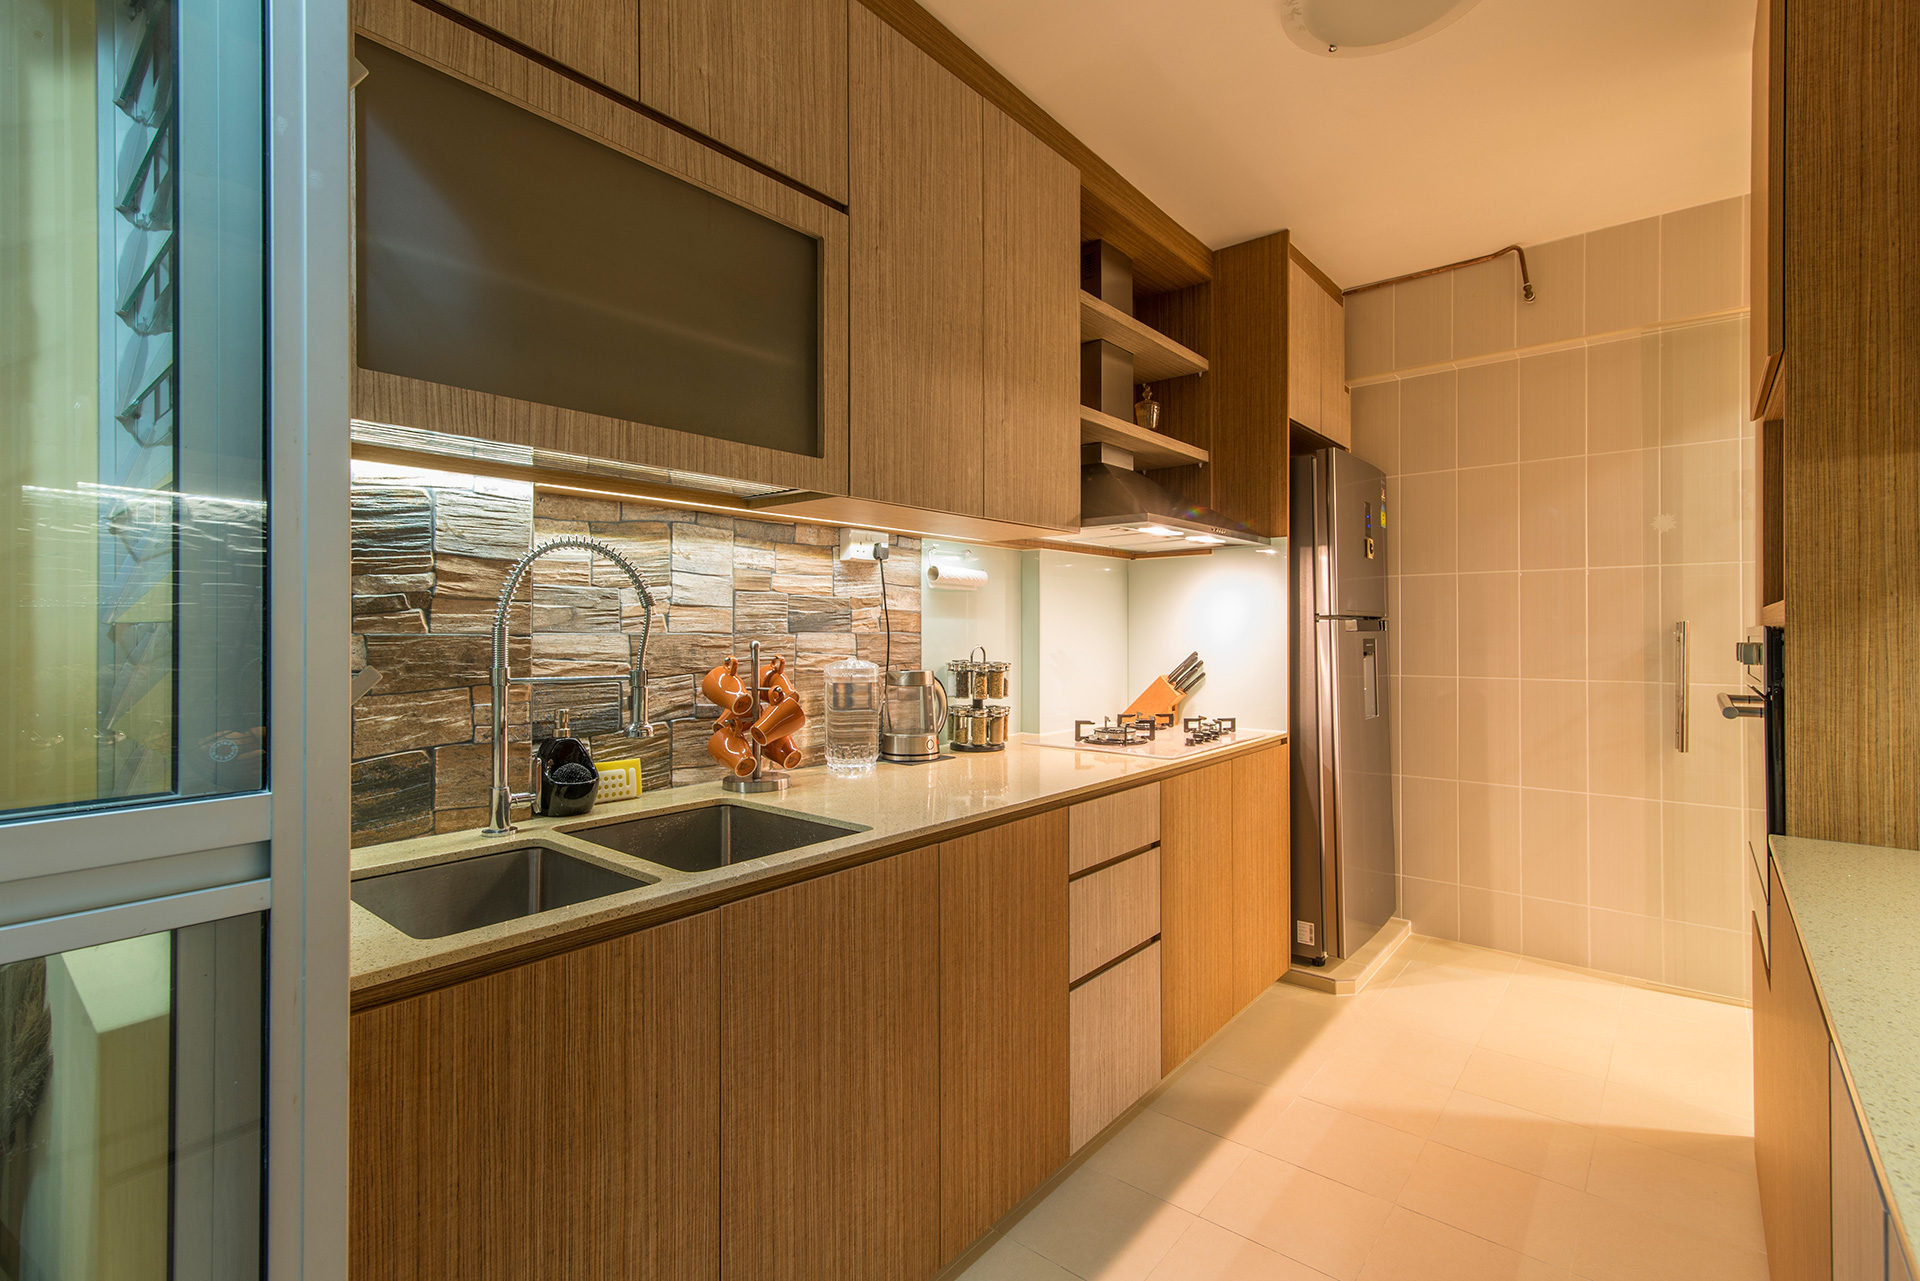 Country, Rustic Design - Kitchen - HDB 5 Room - Design by Ideal Design Interior Pte Ltd